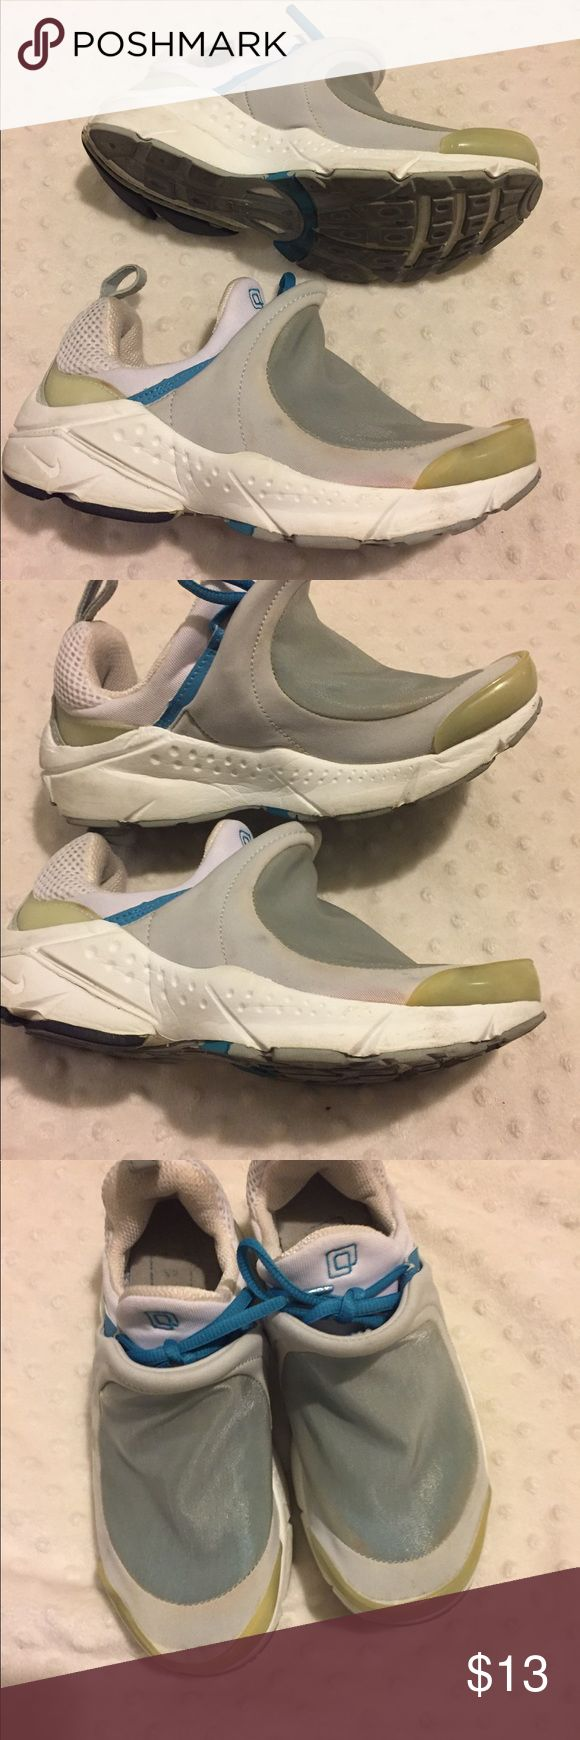 Nike presto sneakers No trades very light shoes. Nike Shoes